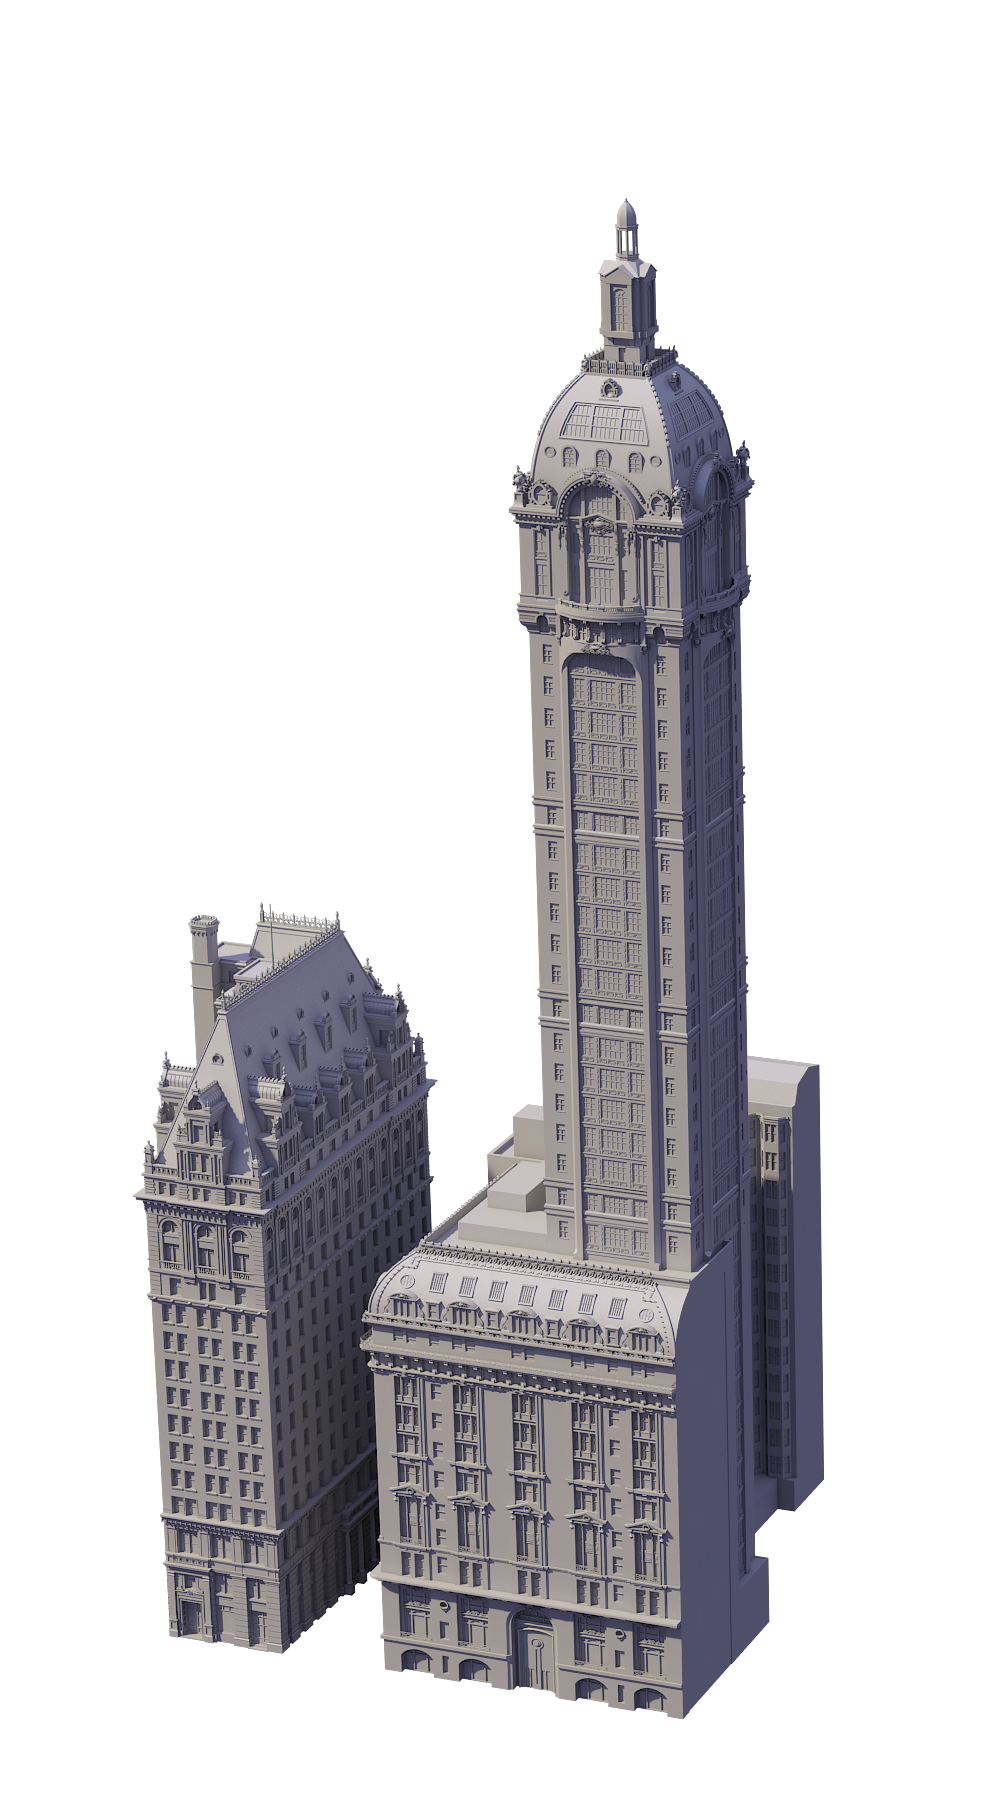 New york life building clipart graphic black and white download Metropolitan life tower clipart images gallery for free ... graphic black and white download